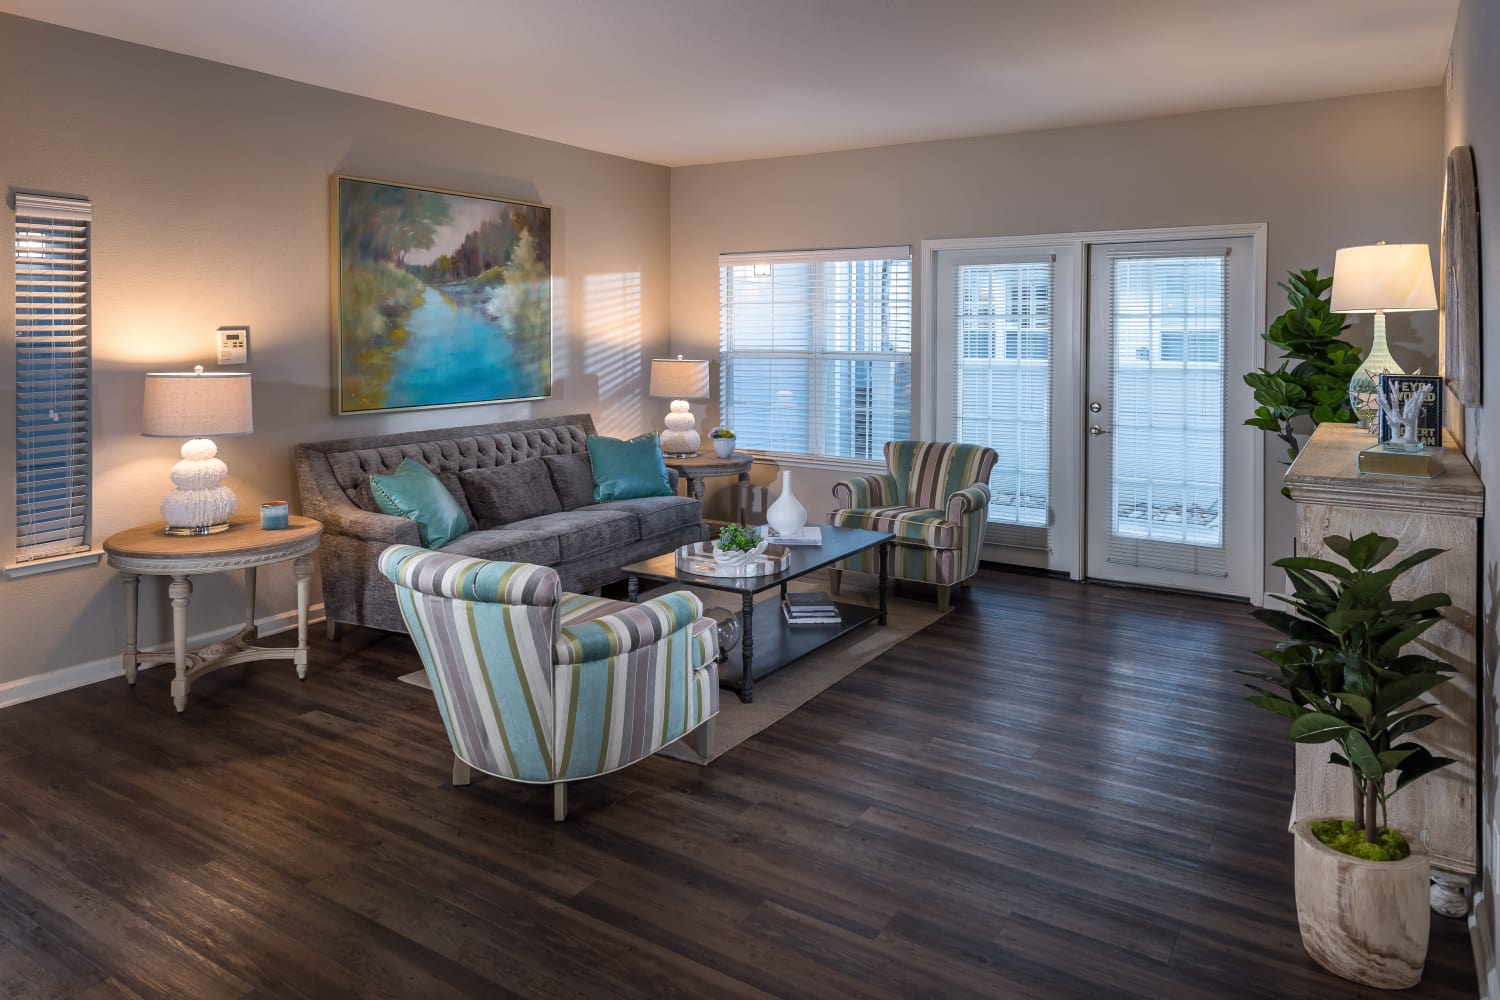 Open concept floor plans at Nantucket Apartments in Santa Clara, California